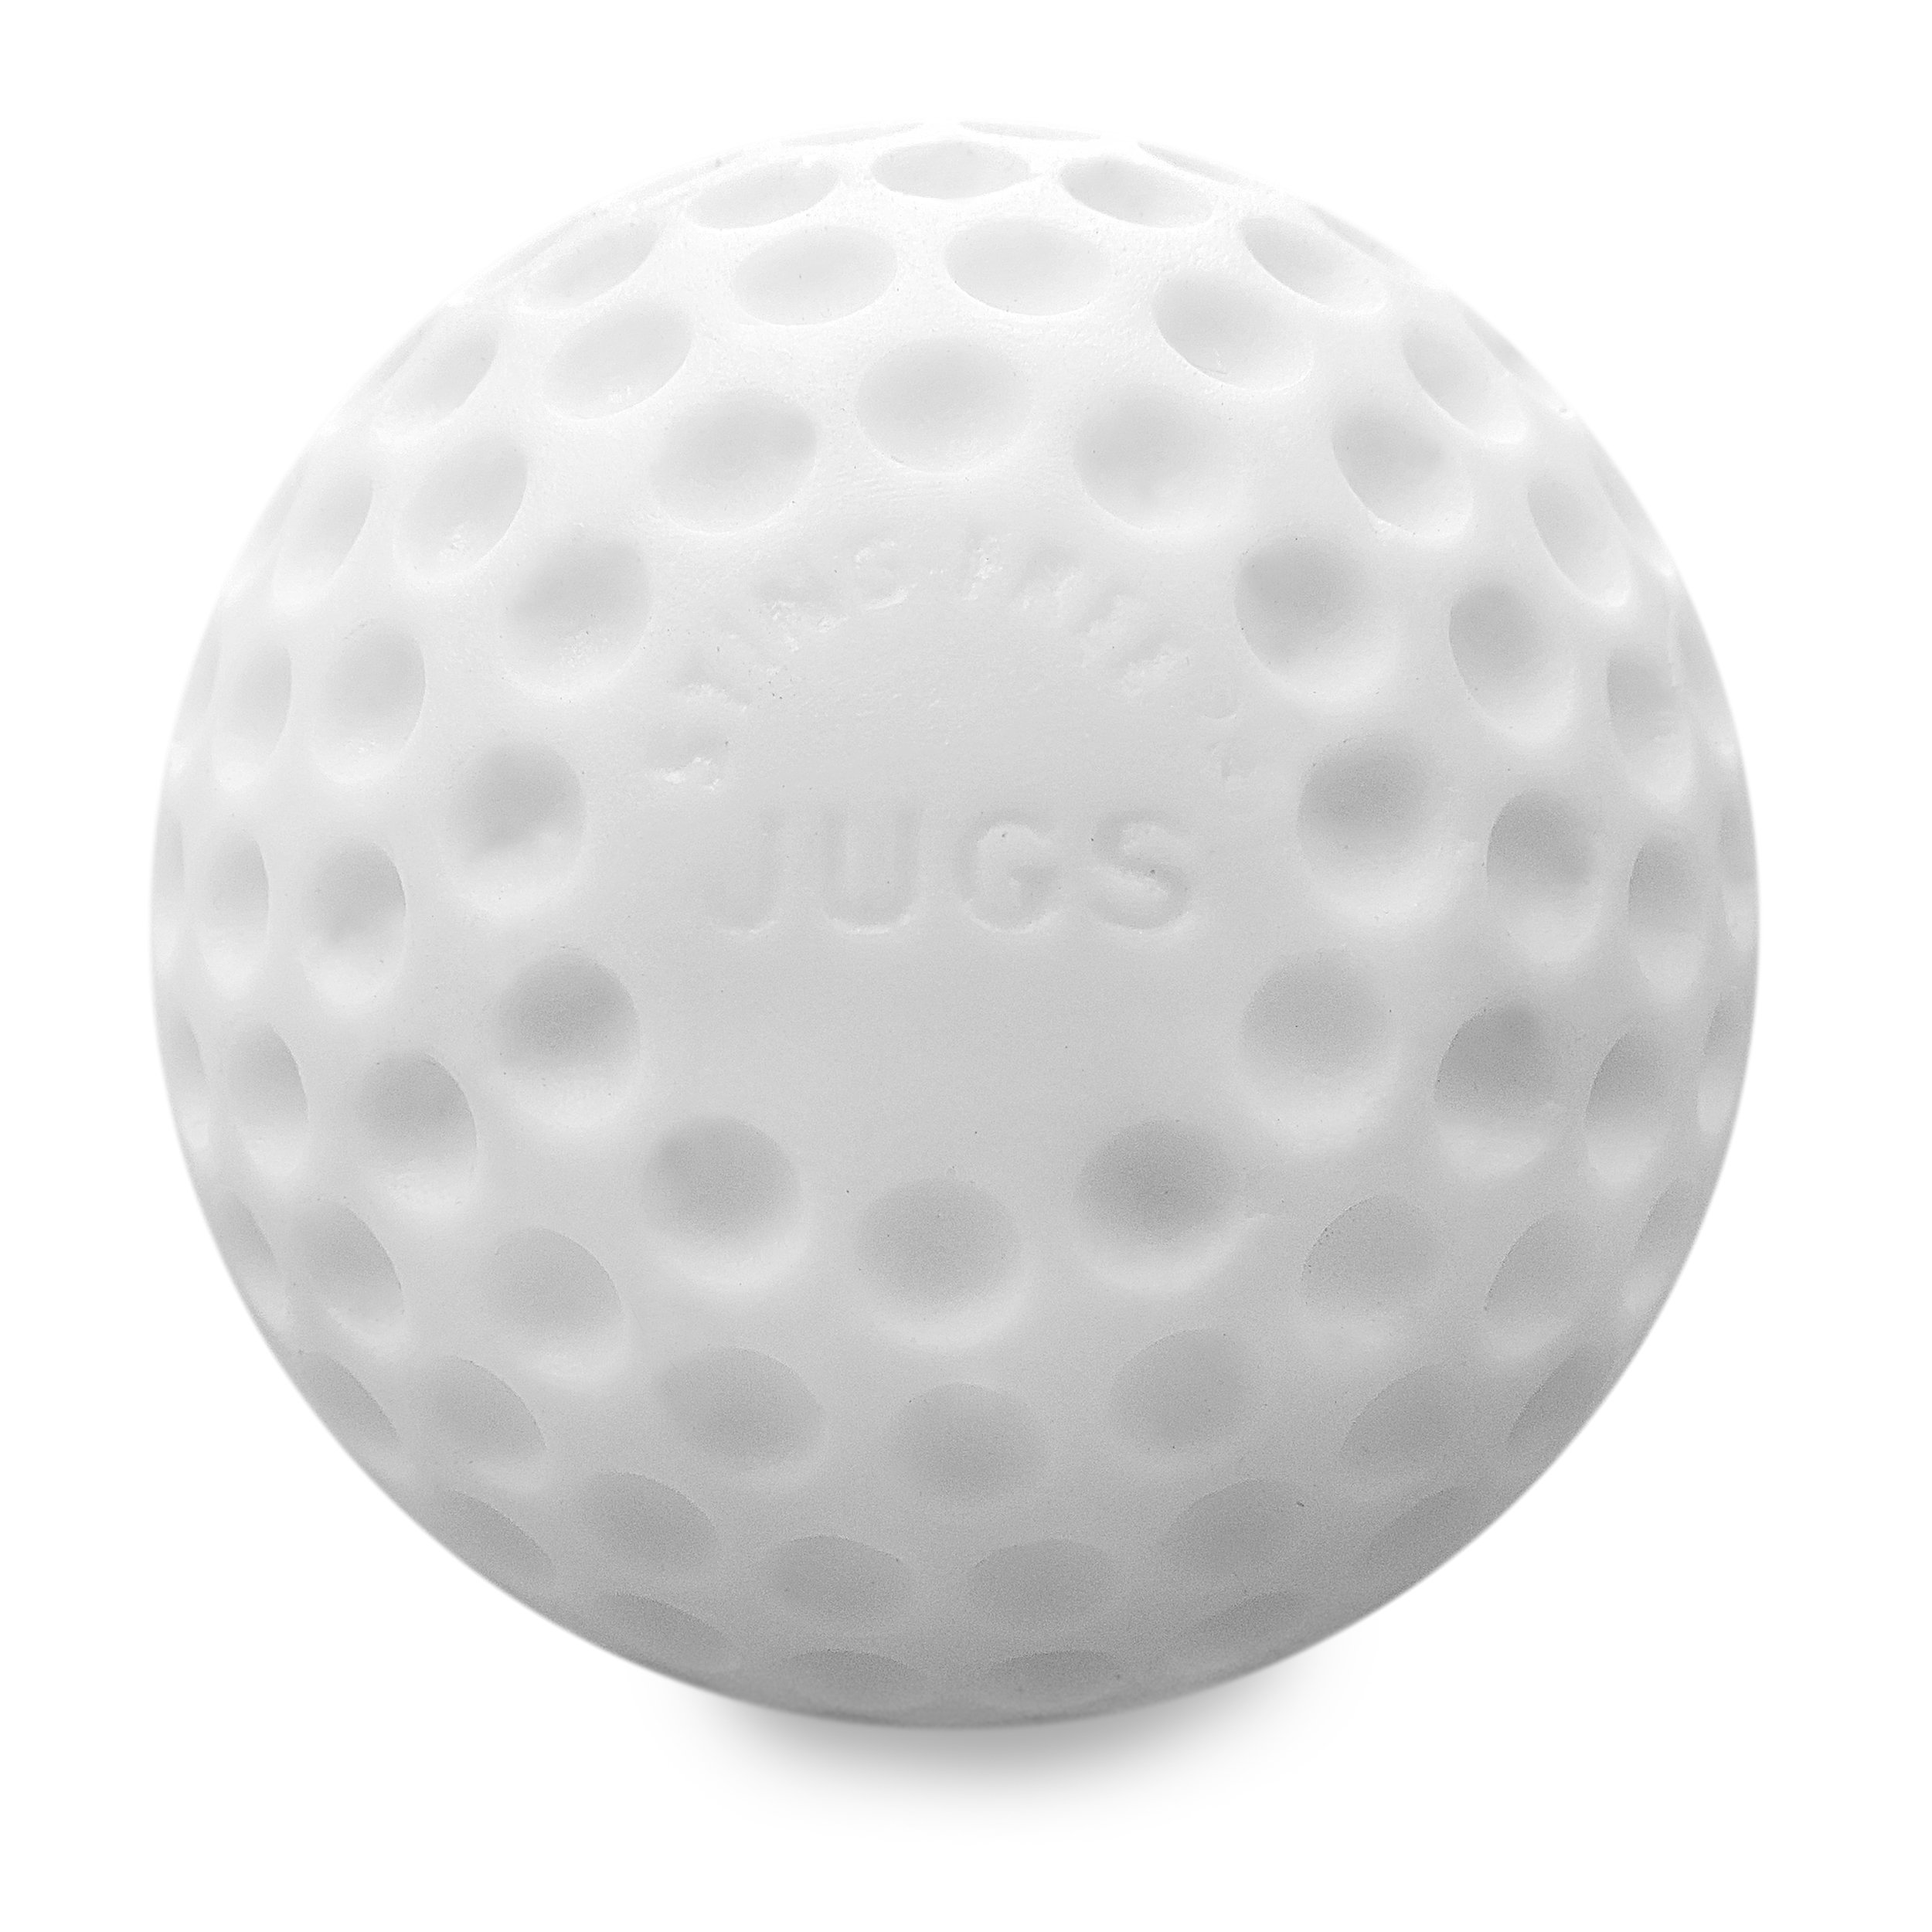 Jugs Sting-Free Dimpled White Baseballs - 1 Dozen by Jugs (Image #1)